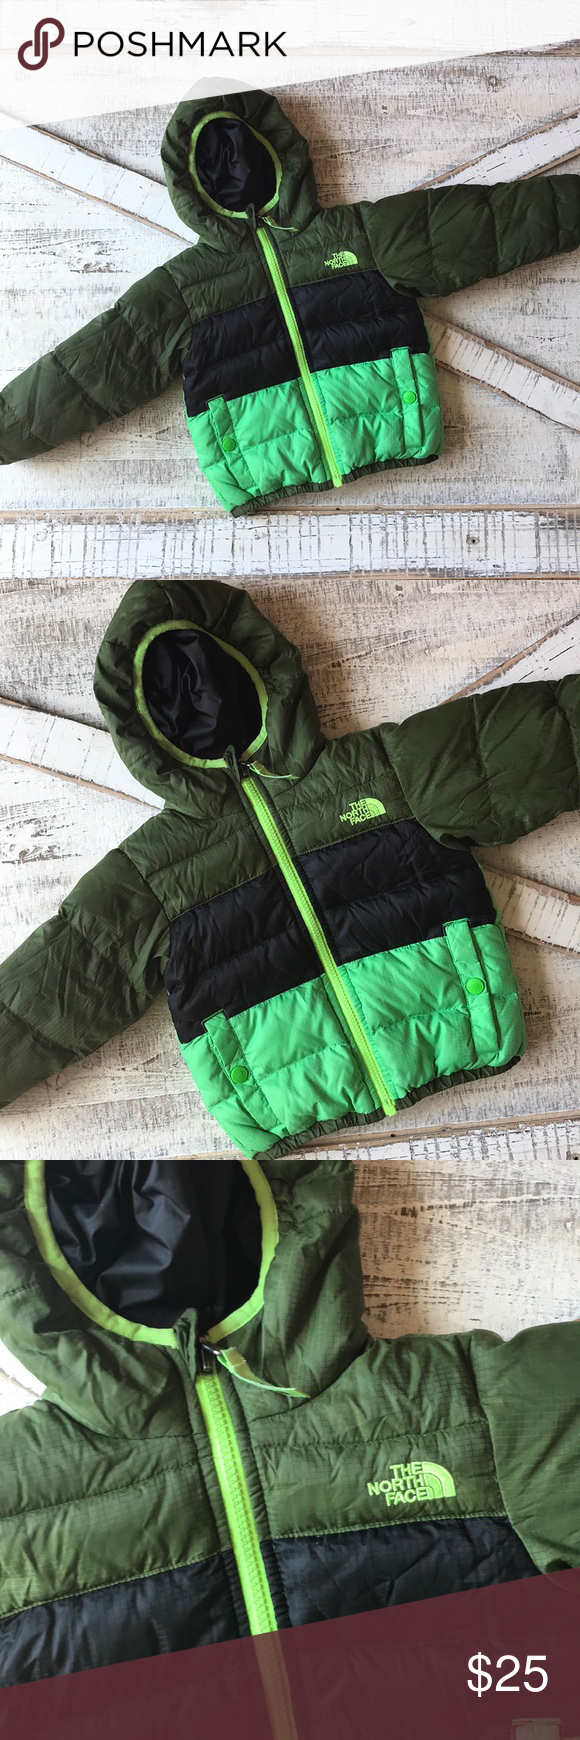 The North Face Puffer Reversible Jacket Boys 2t The North Face Puffer North Face Puffer Reversible Jackets [ 1740 x 580 Pixel ]